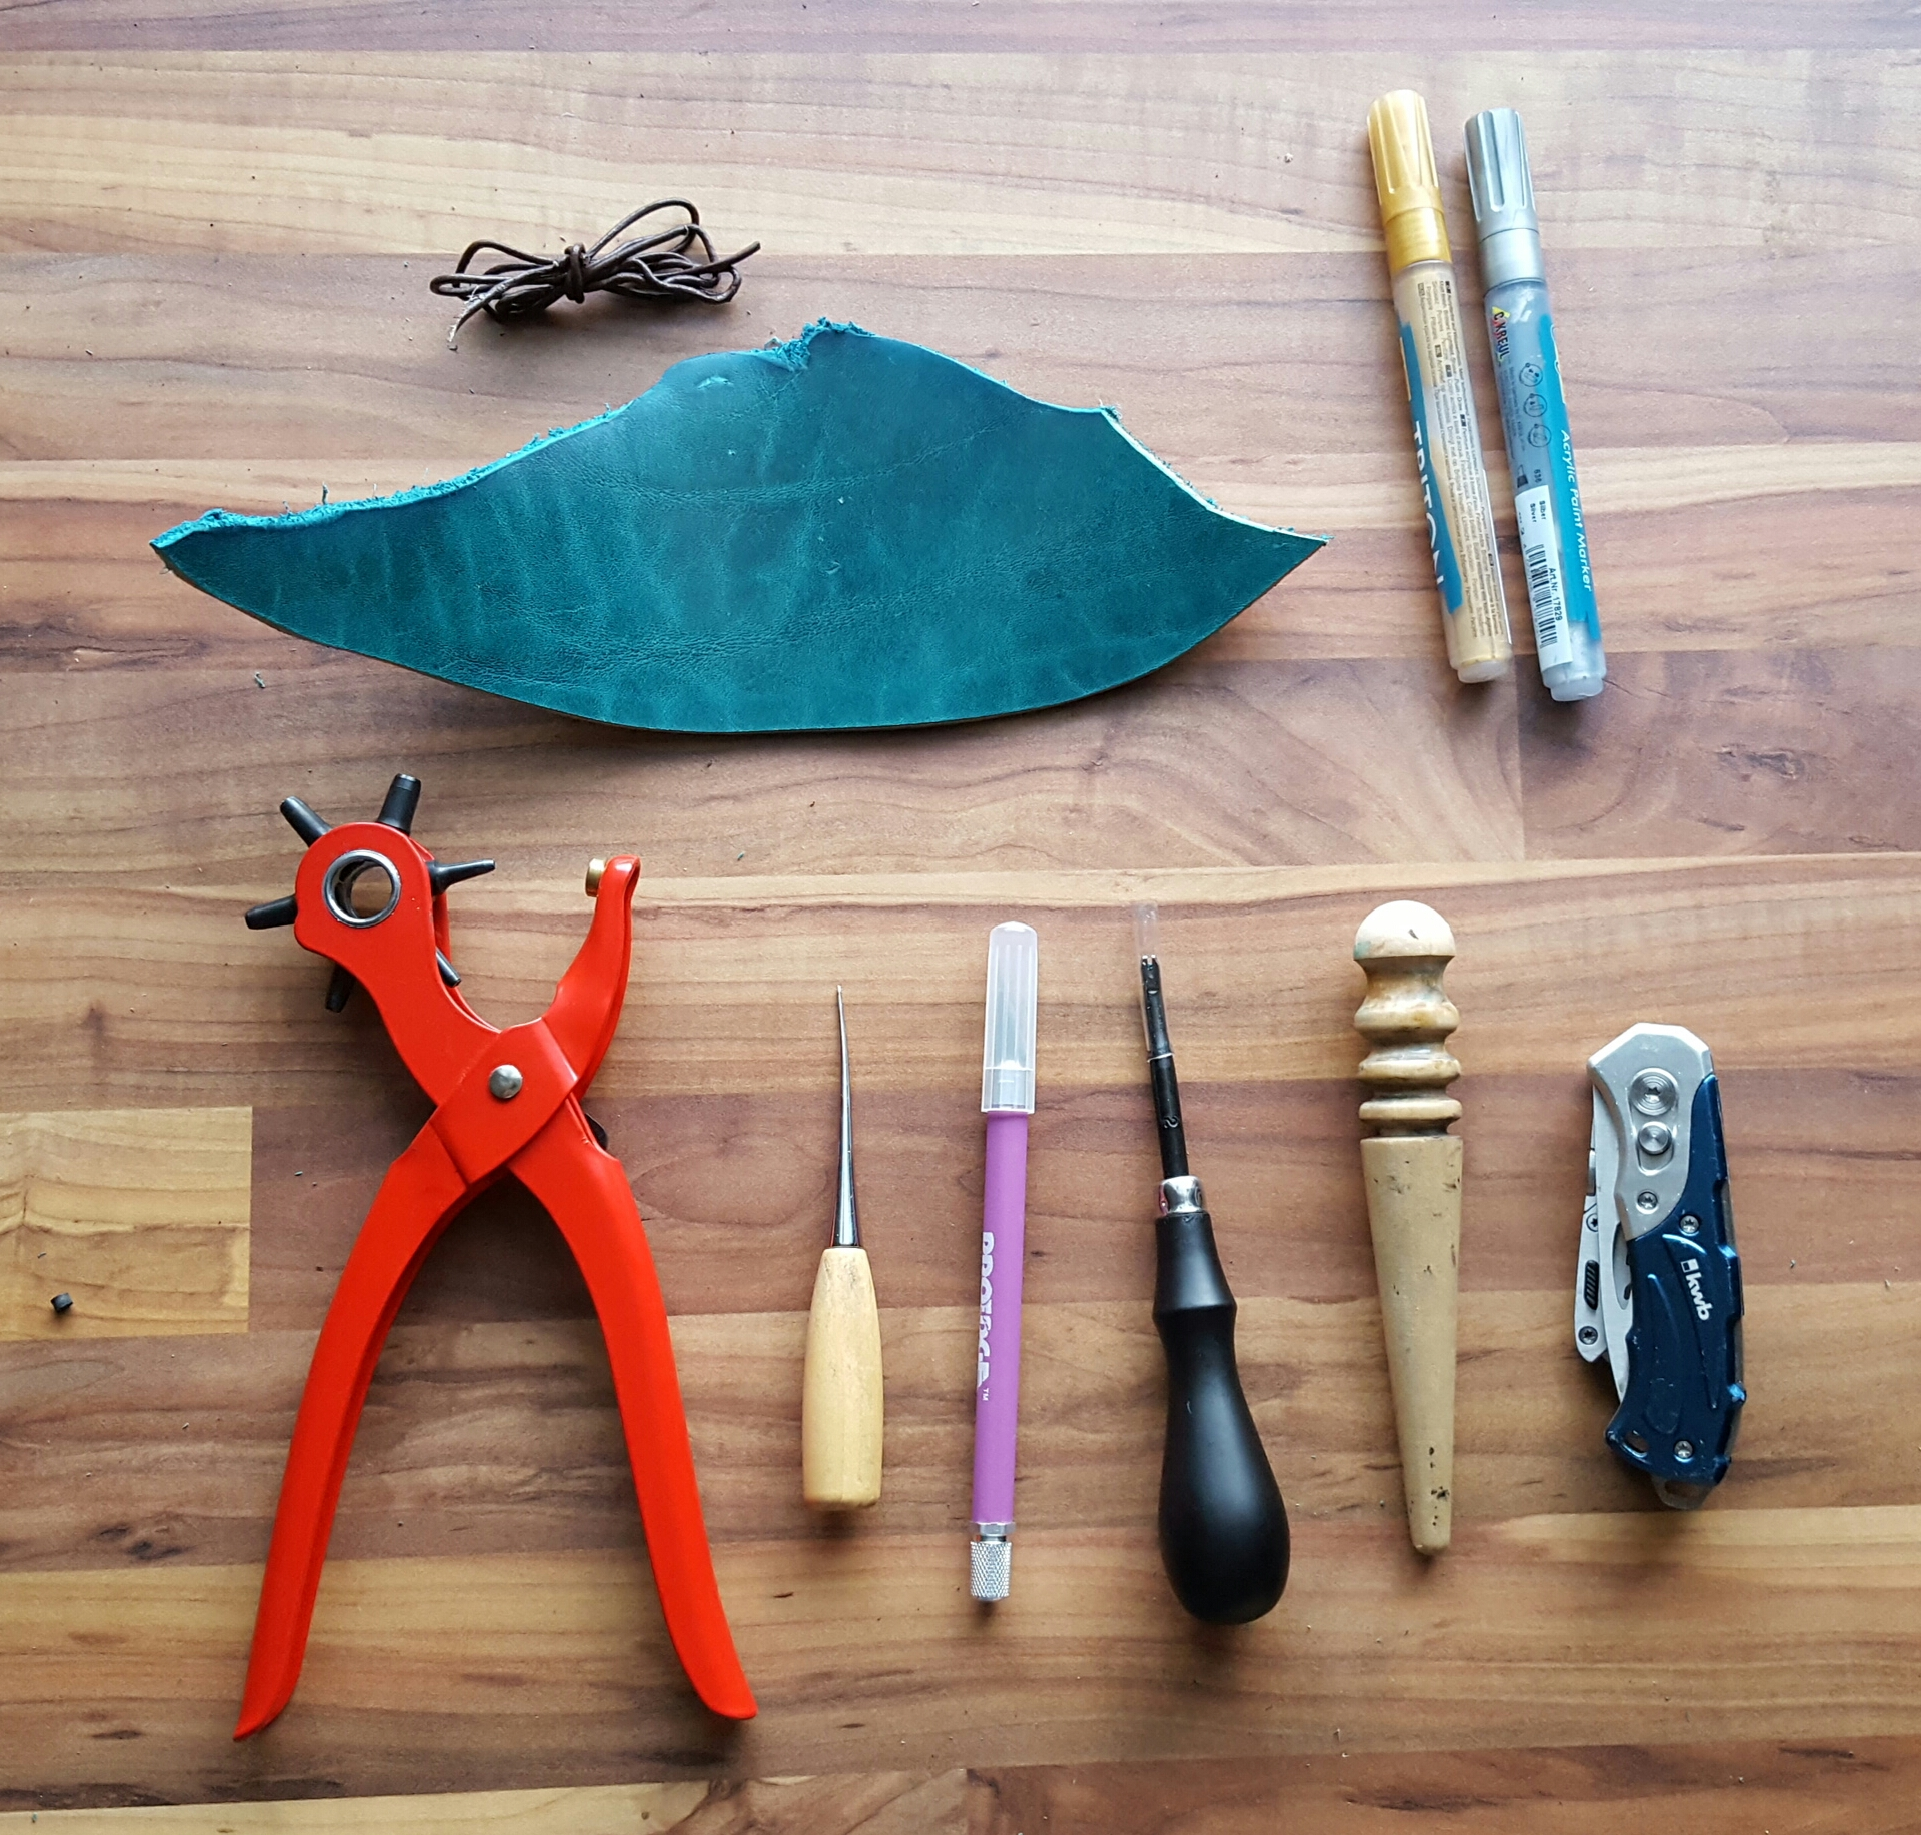 Picture of Tools and Supplies/Werkzeug Und Material